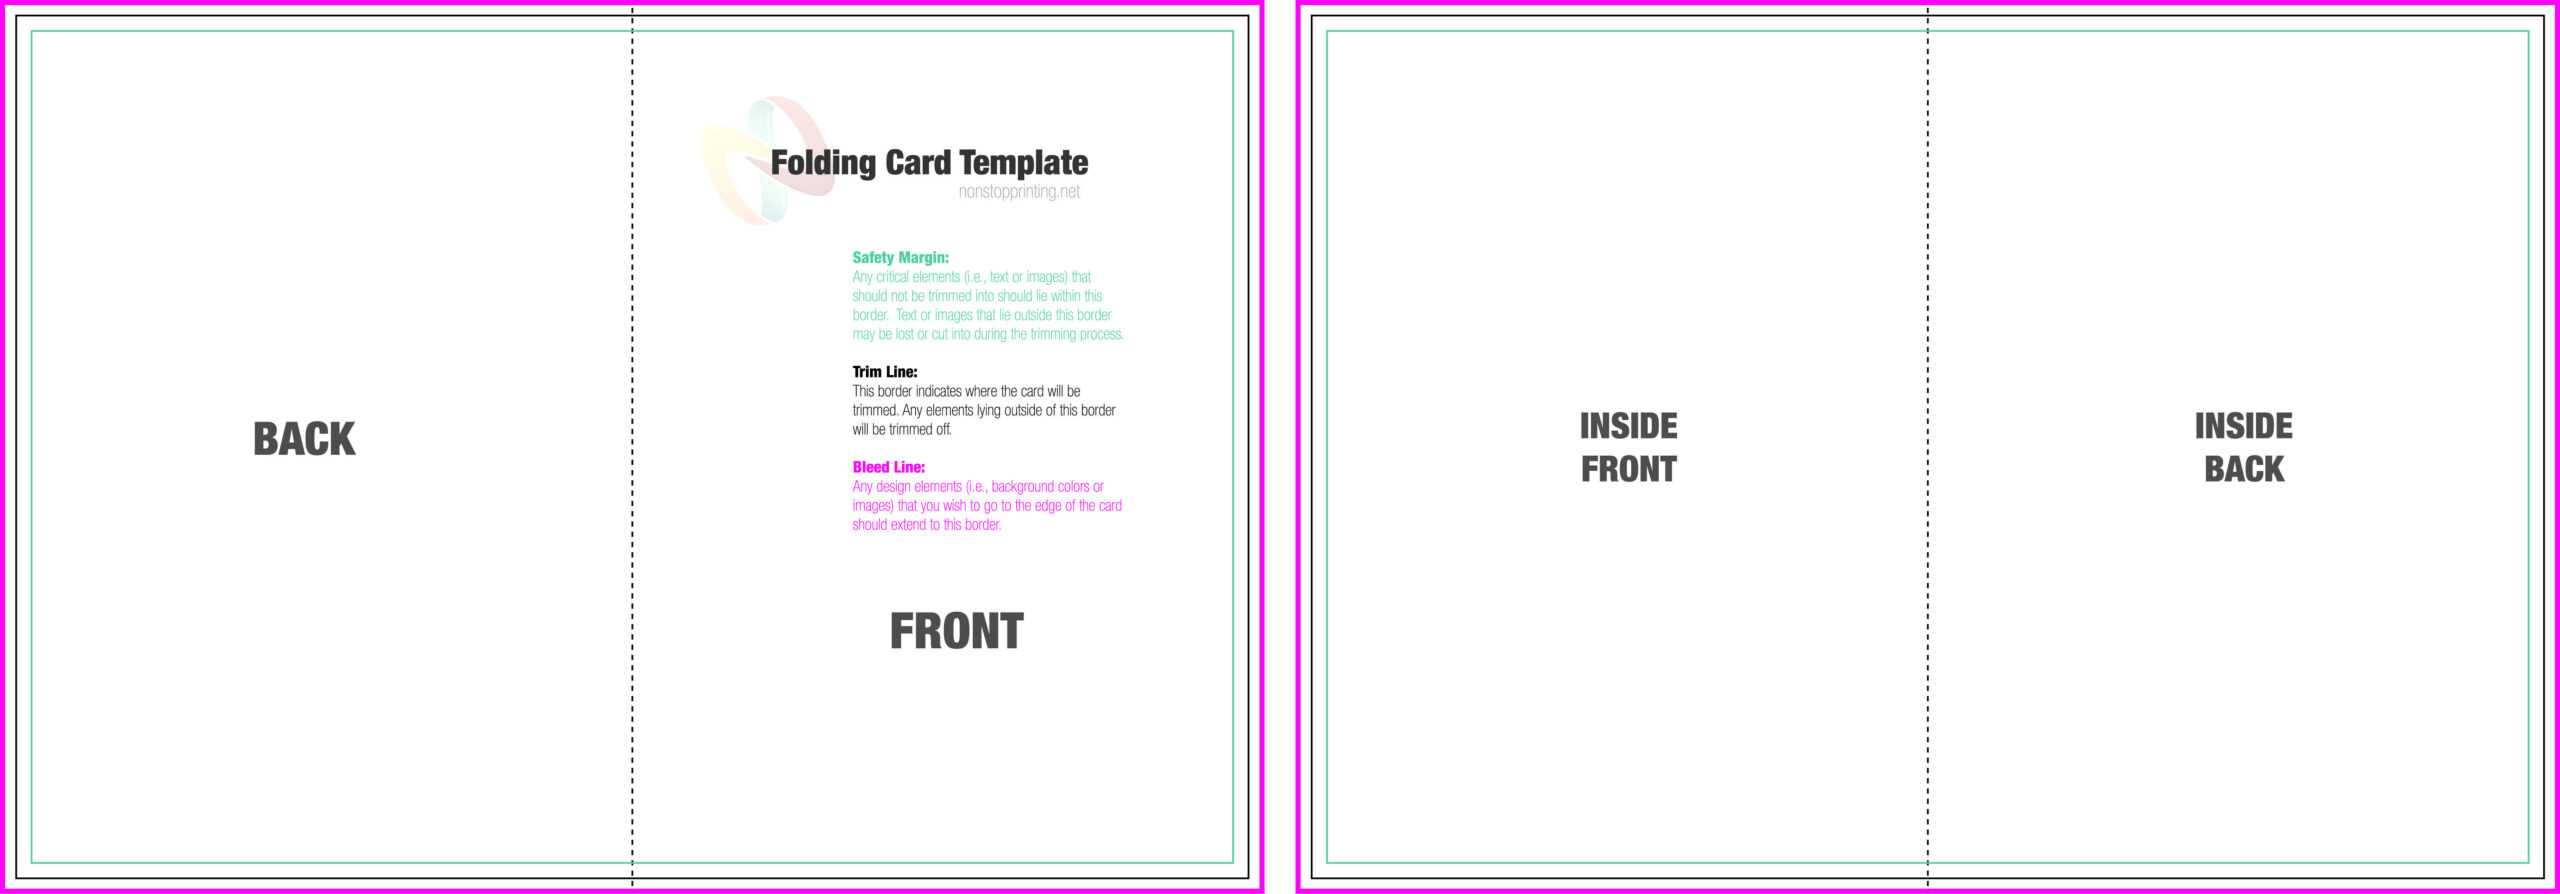 39 Online Folding Card Template For Word Now With Folding Intended For Foldable Card Template Word